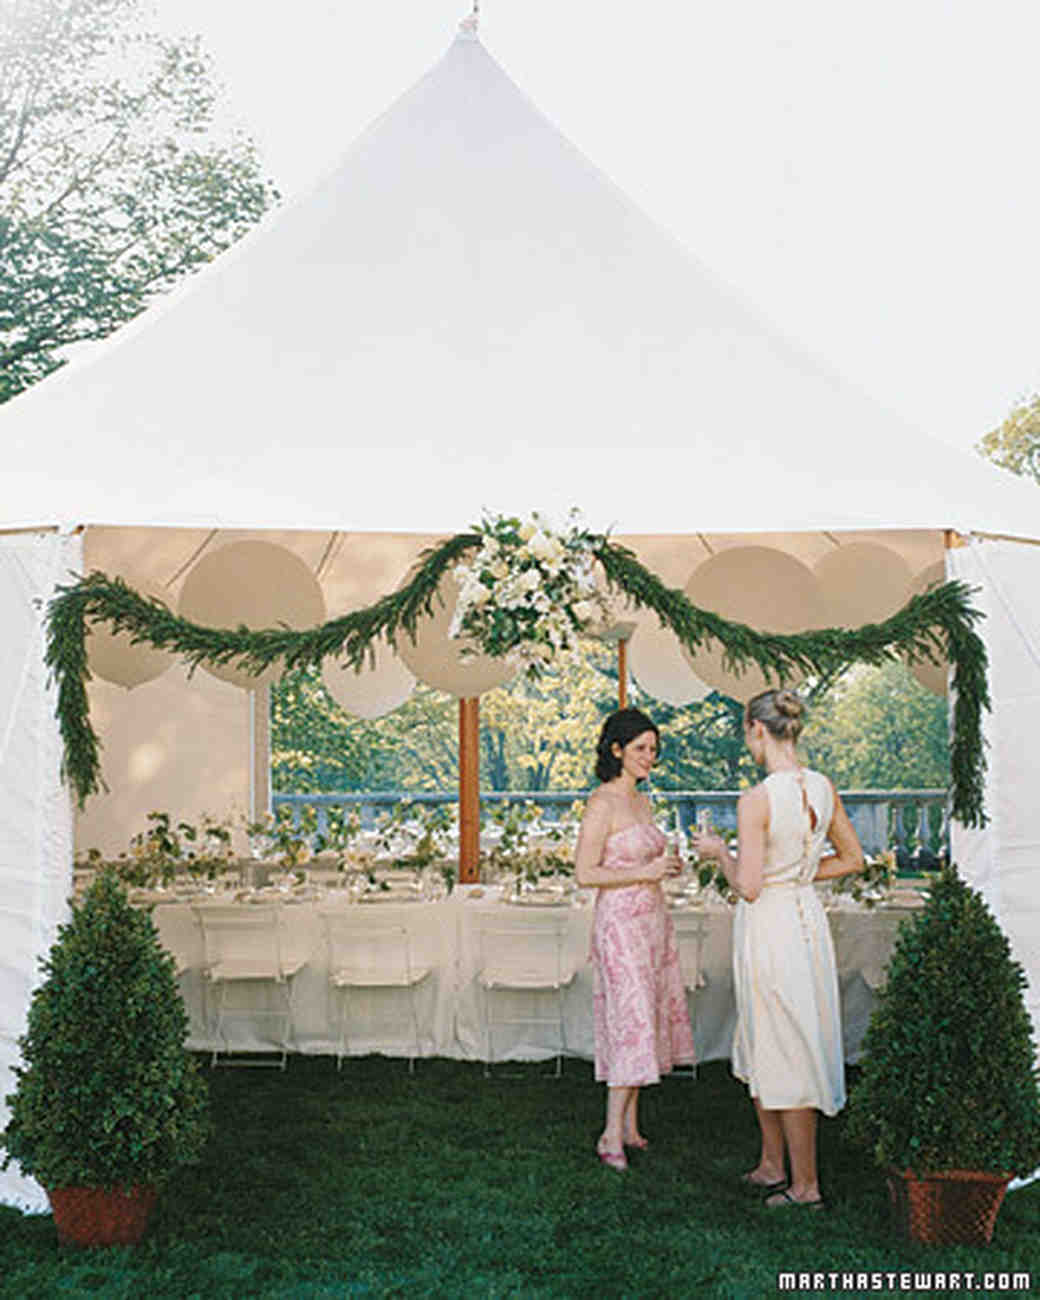 summer weddings an outdoor occasion martha stewart weddings & Tent Decorations For Outside Occasions - wedding tent rentals ...